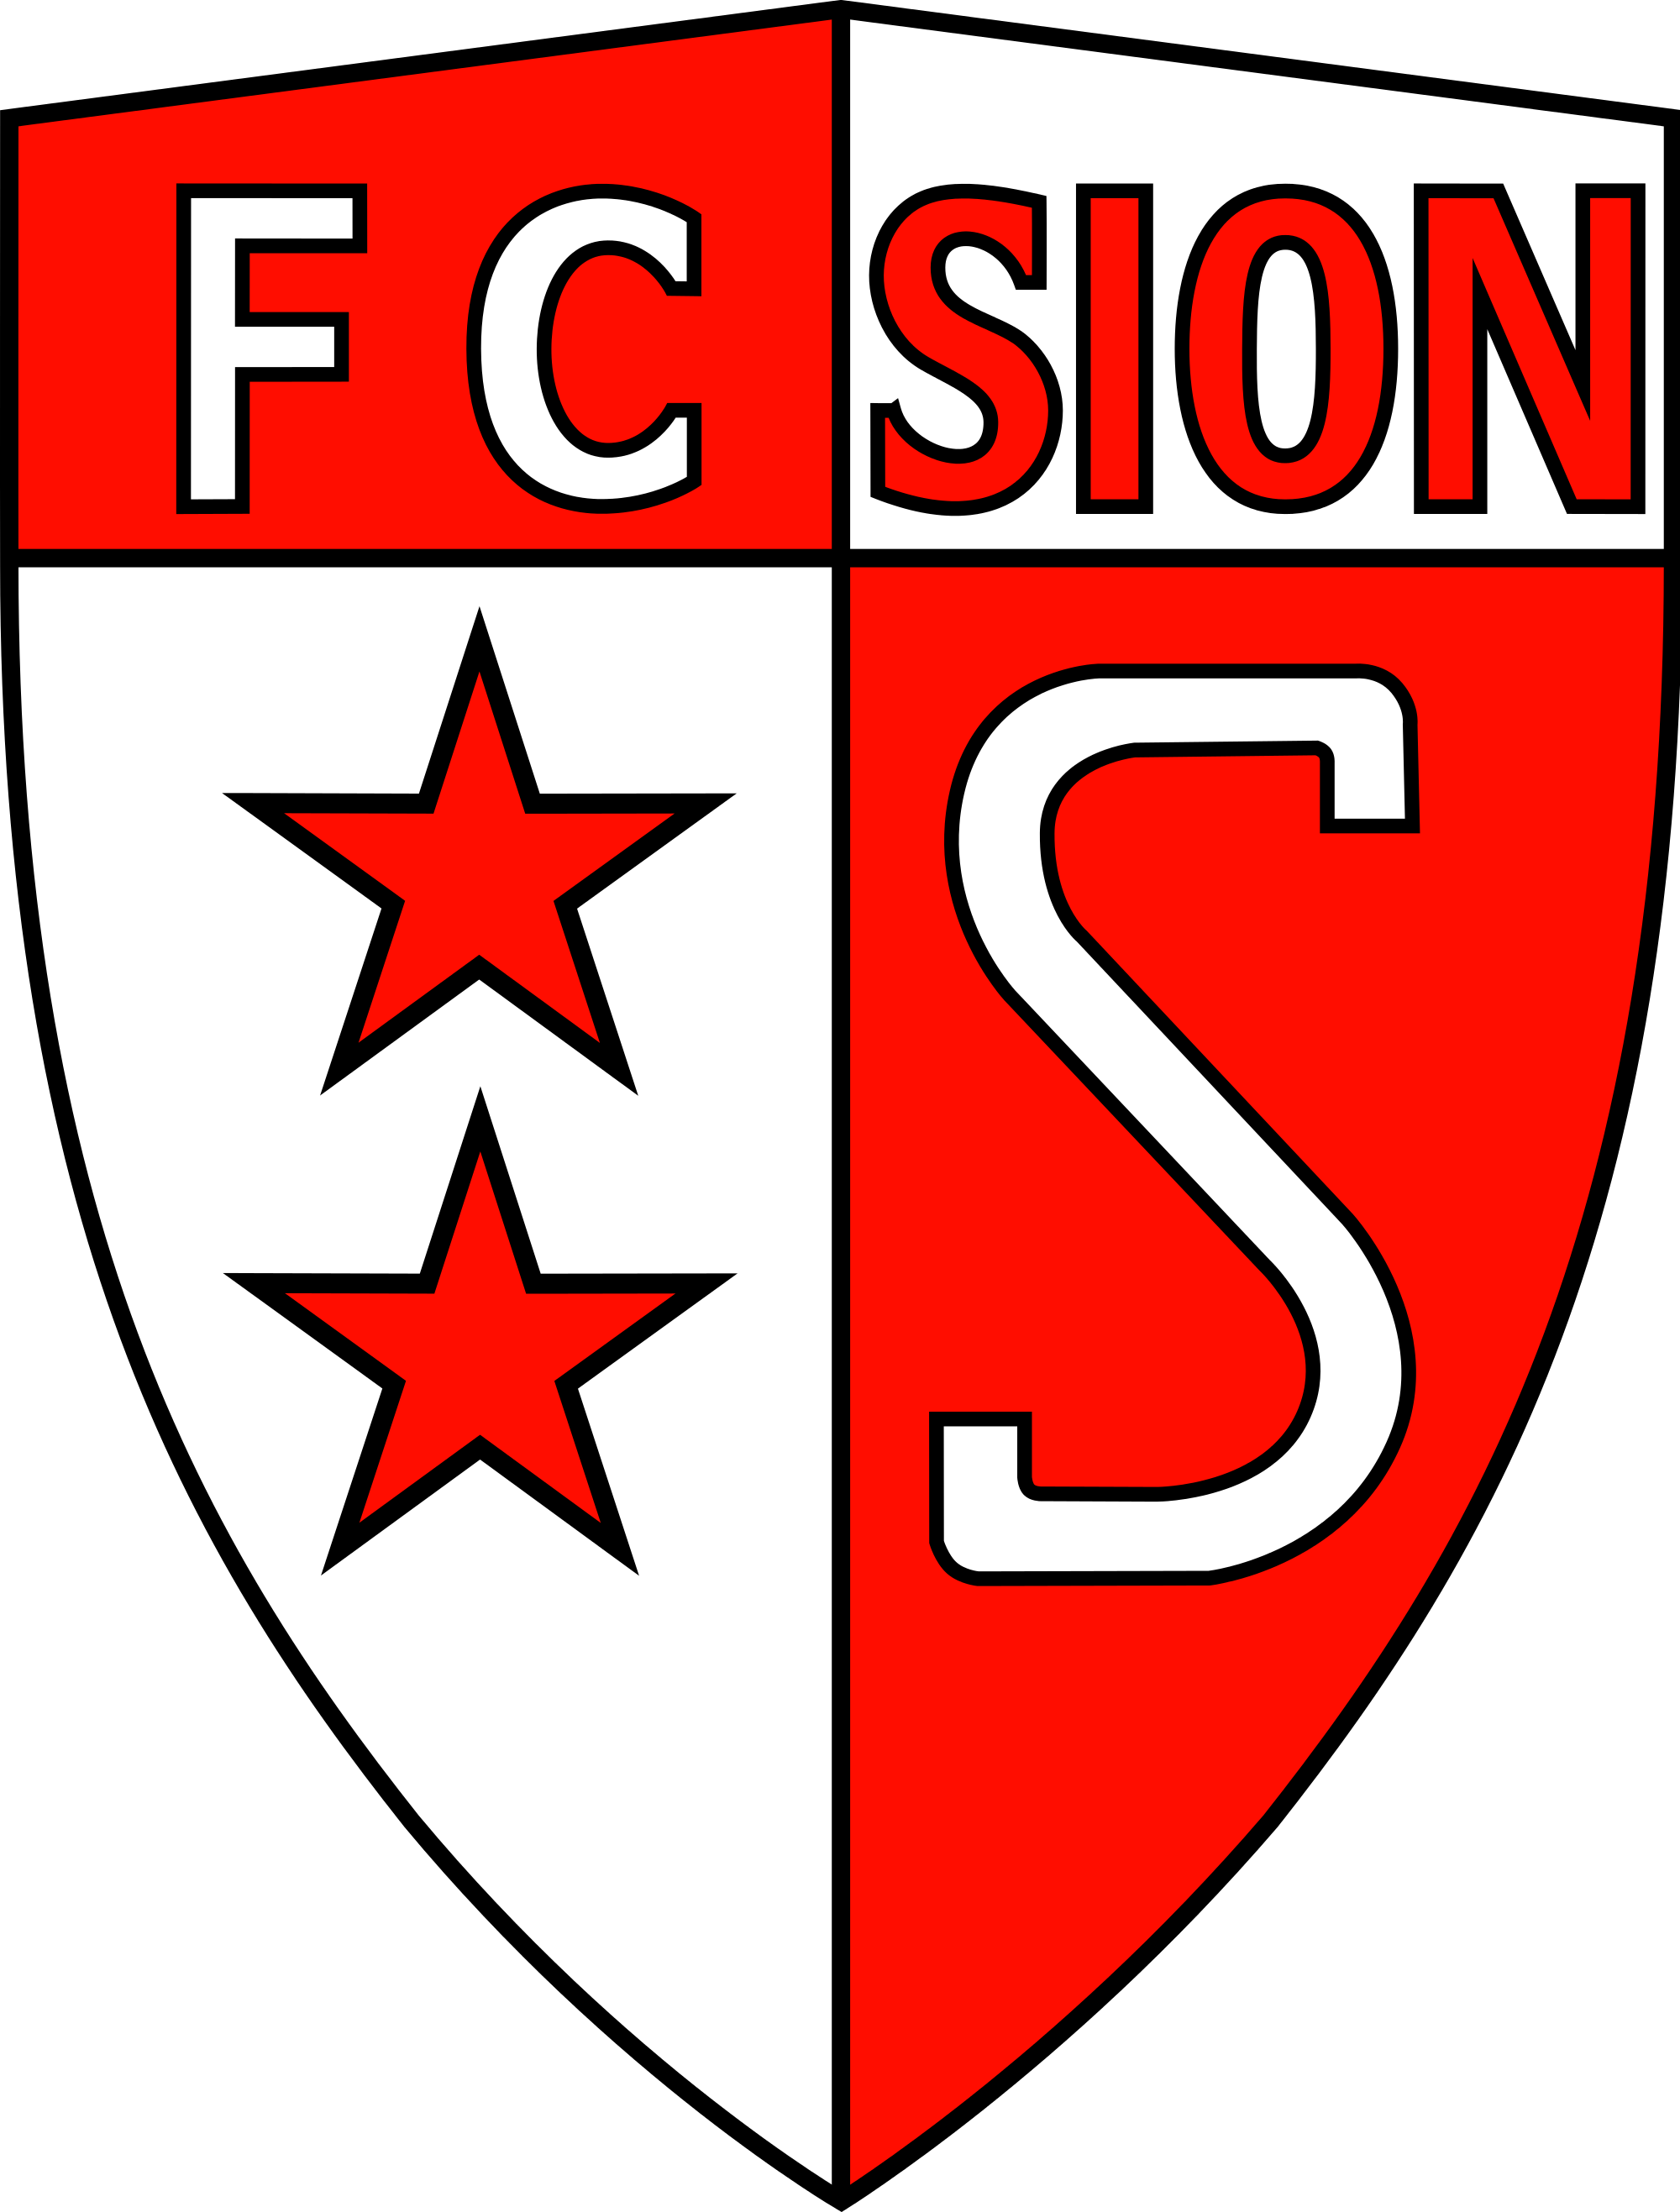 Open Hdpng.com  - Fc Sion, Transparent background PNG HD thumbnail